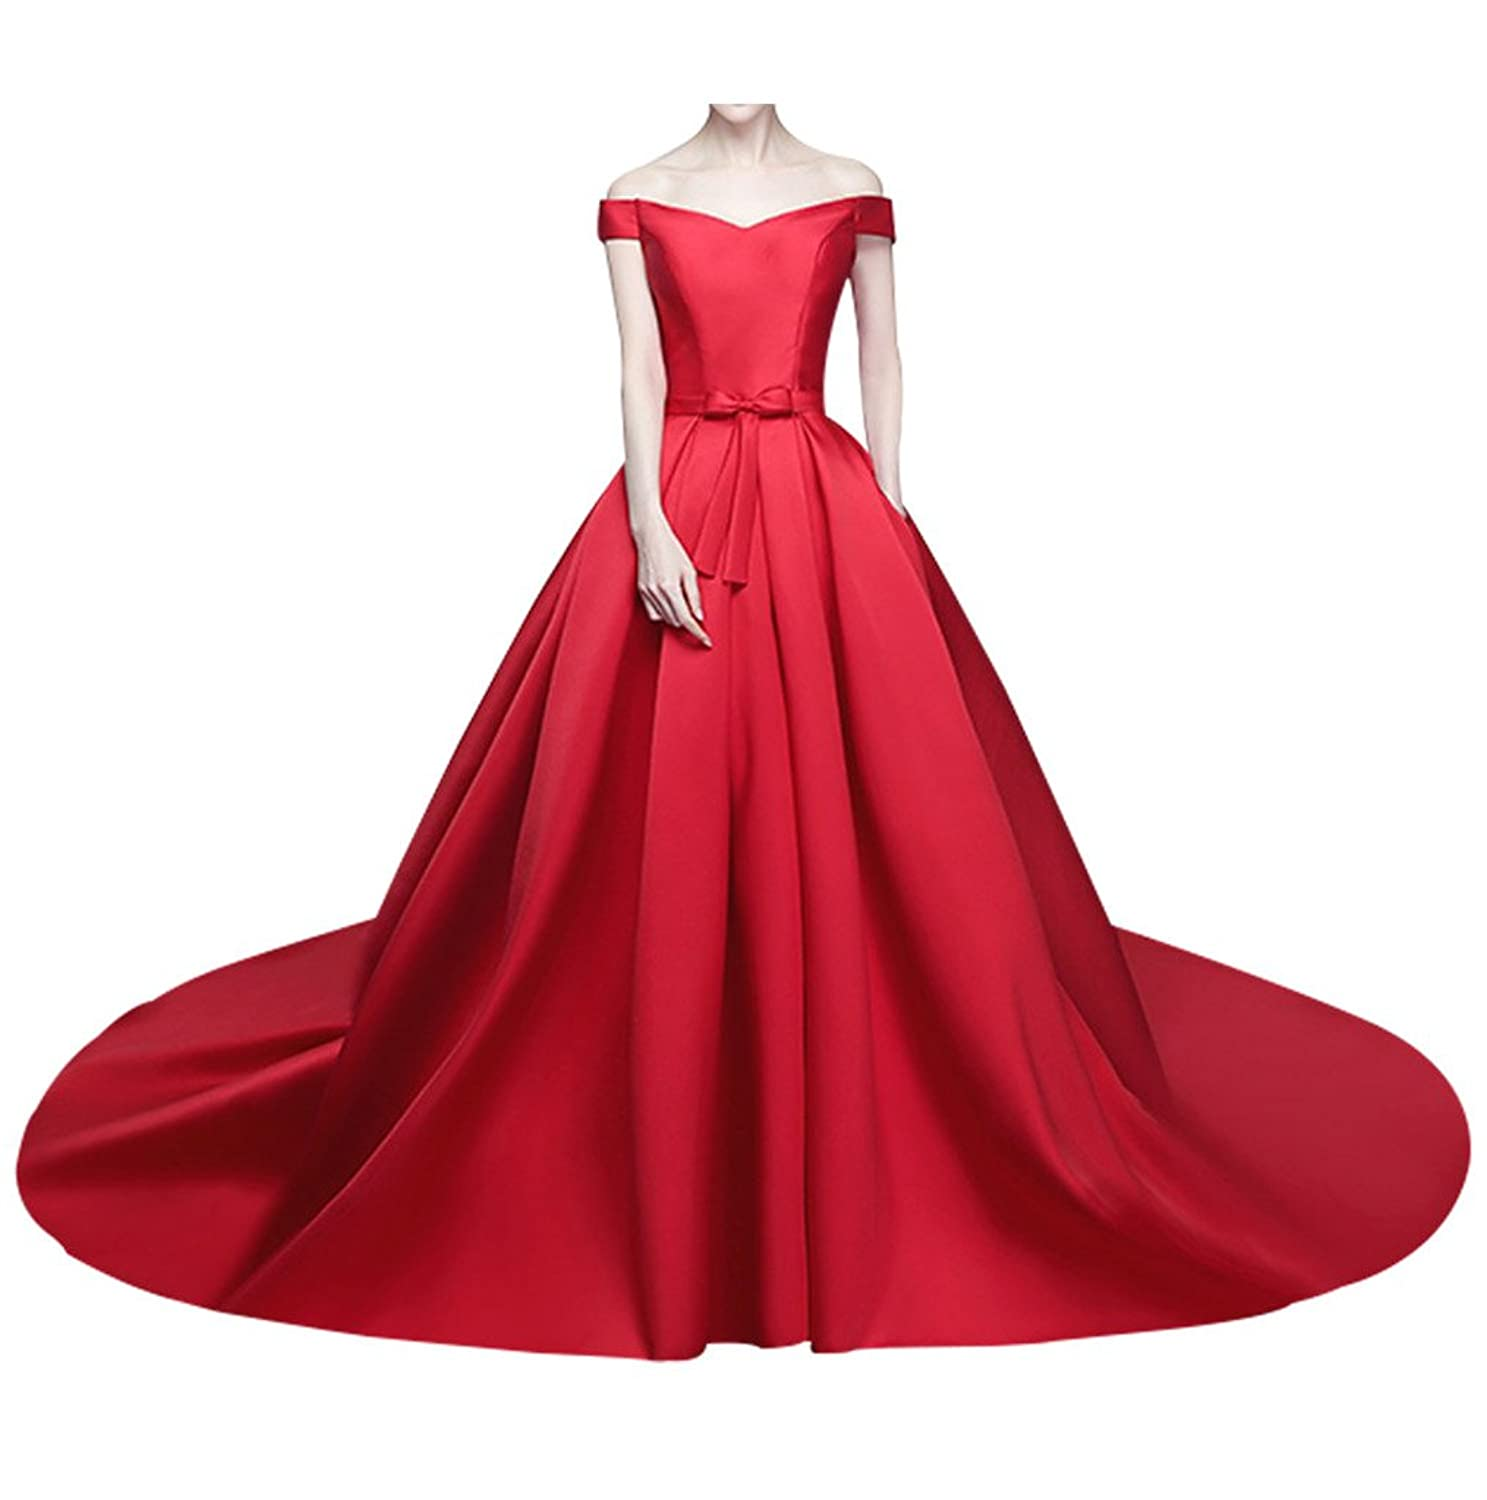 Charm Bridal Princess Red Satin Off Shoulder Wedding Dress for Bride with Train